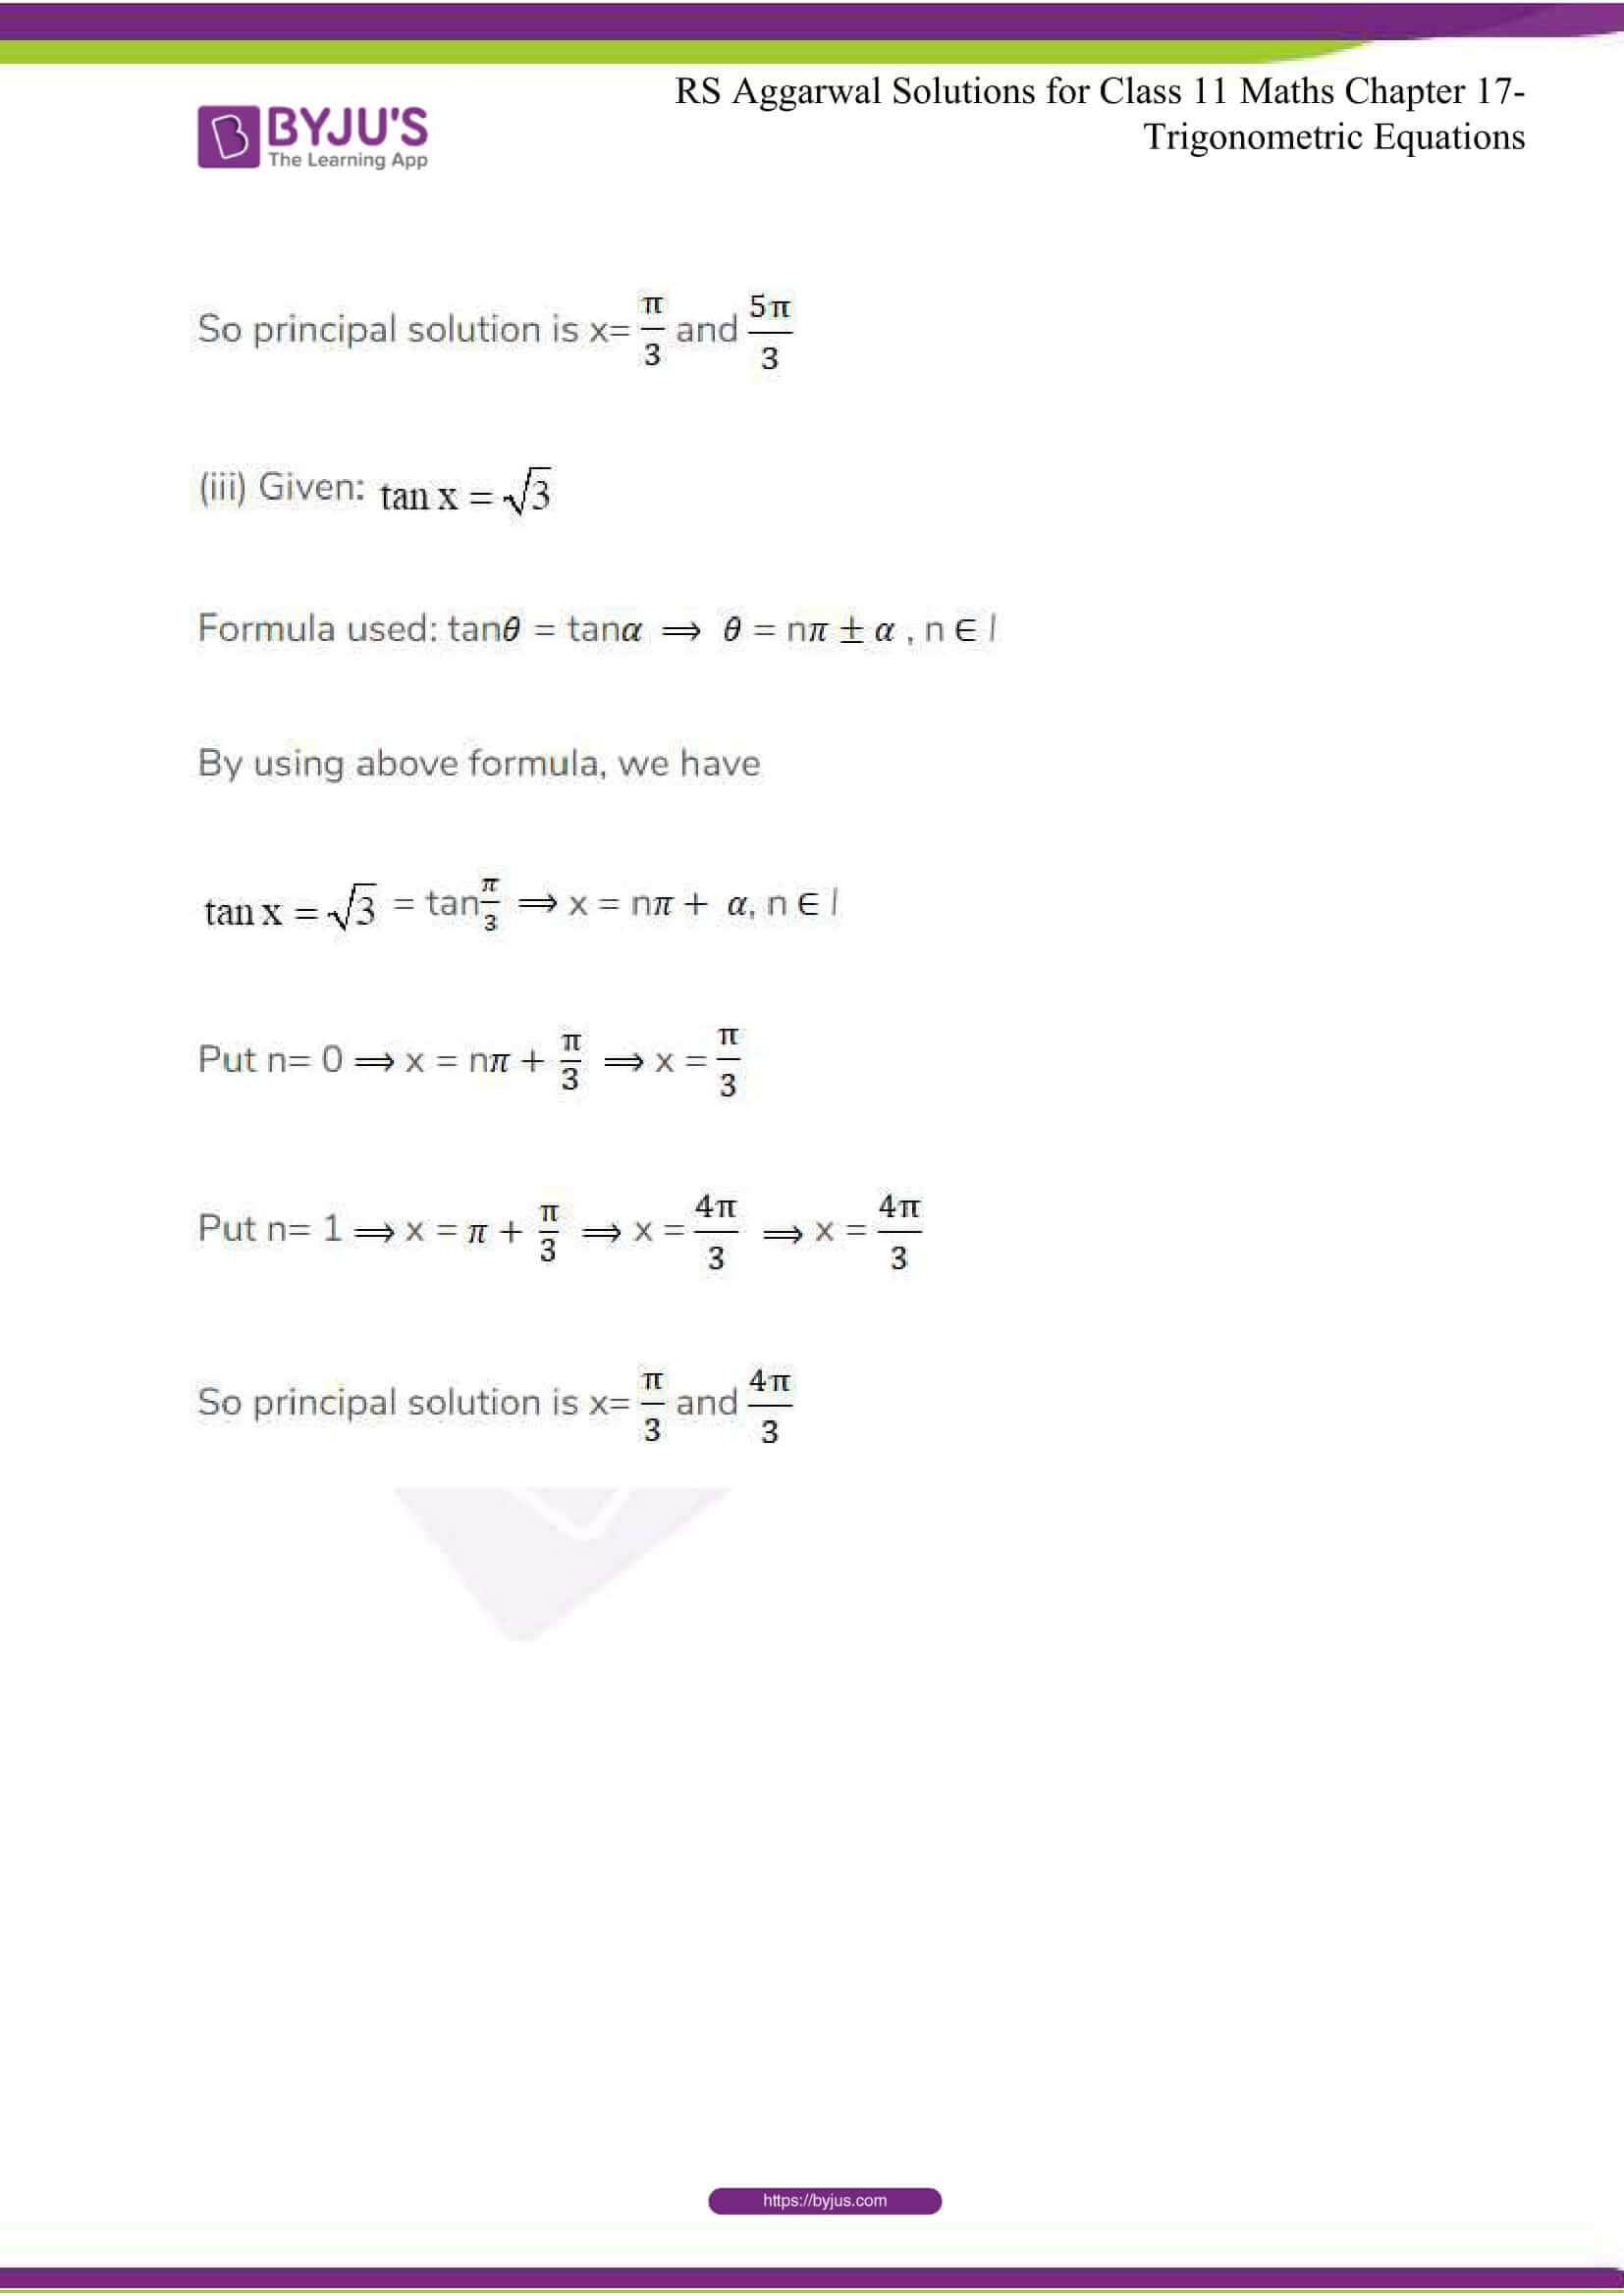 rsaggarwal solutions class 11 maths chapter 17 03